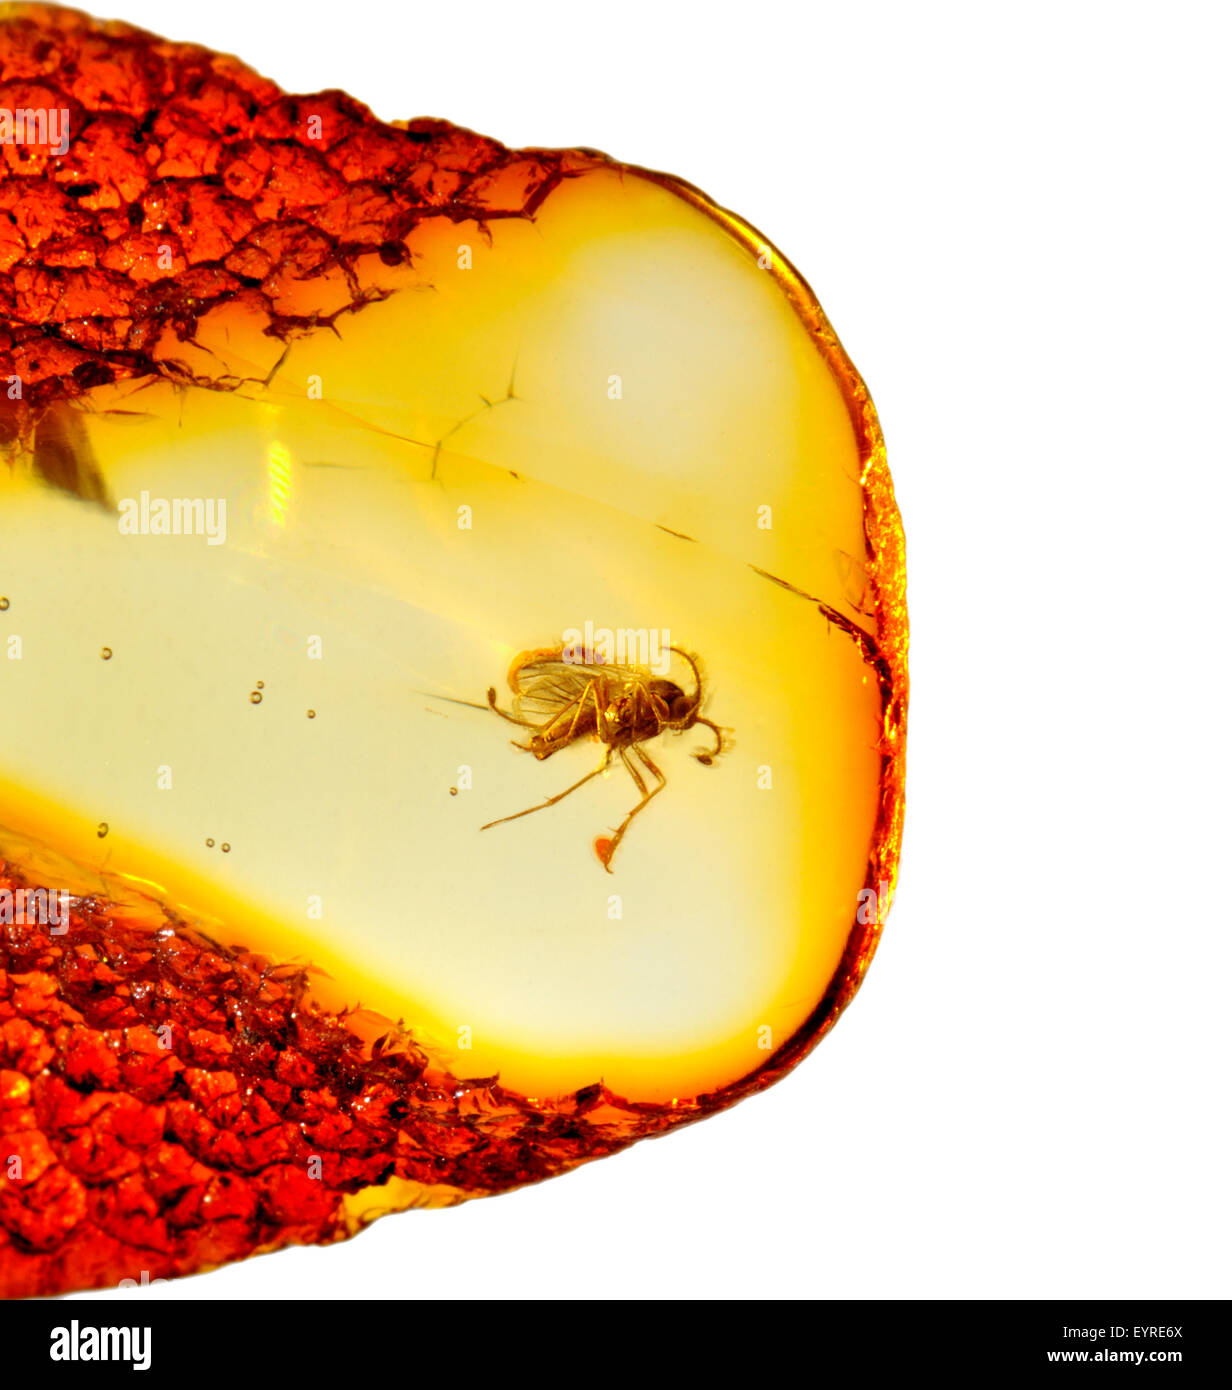 Prehistoric fly (c40-50m years old) preserved in Baltic amber from Kalingrad region, Russia. Insect 3-4mm long - Stock Image